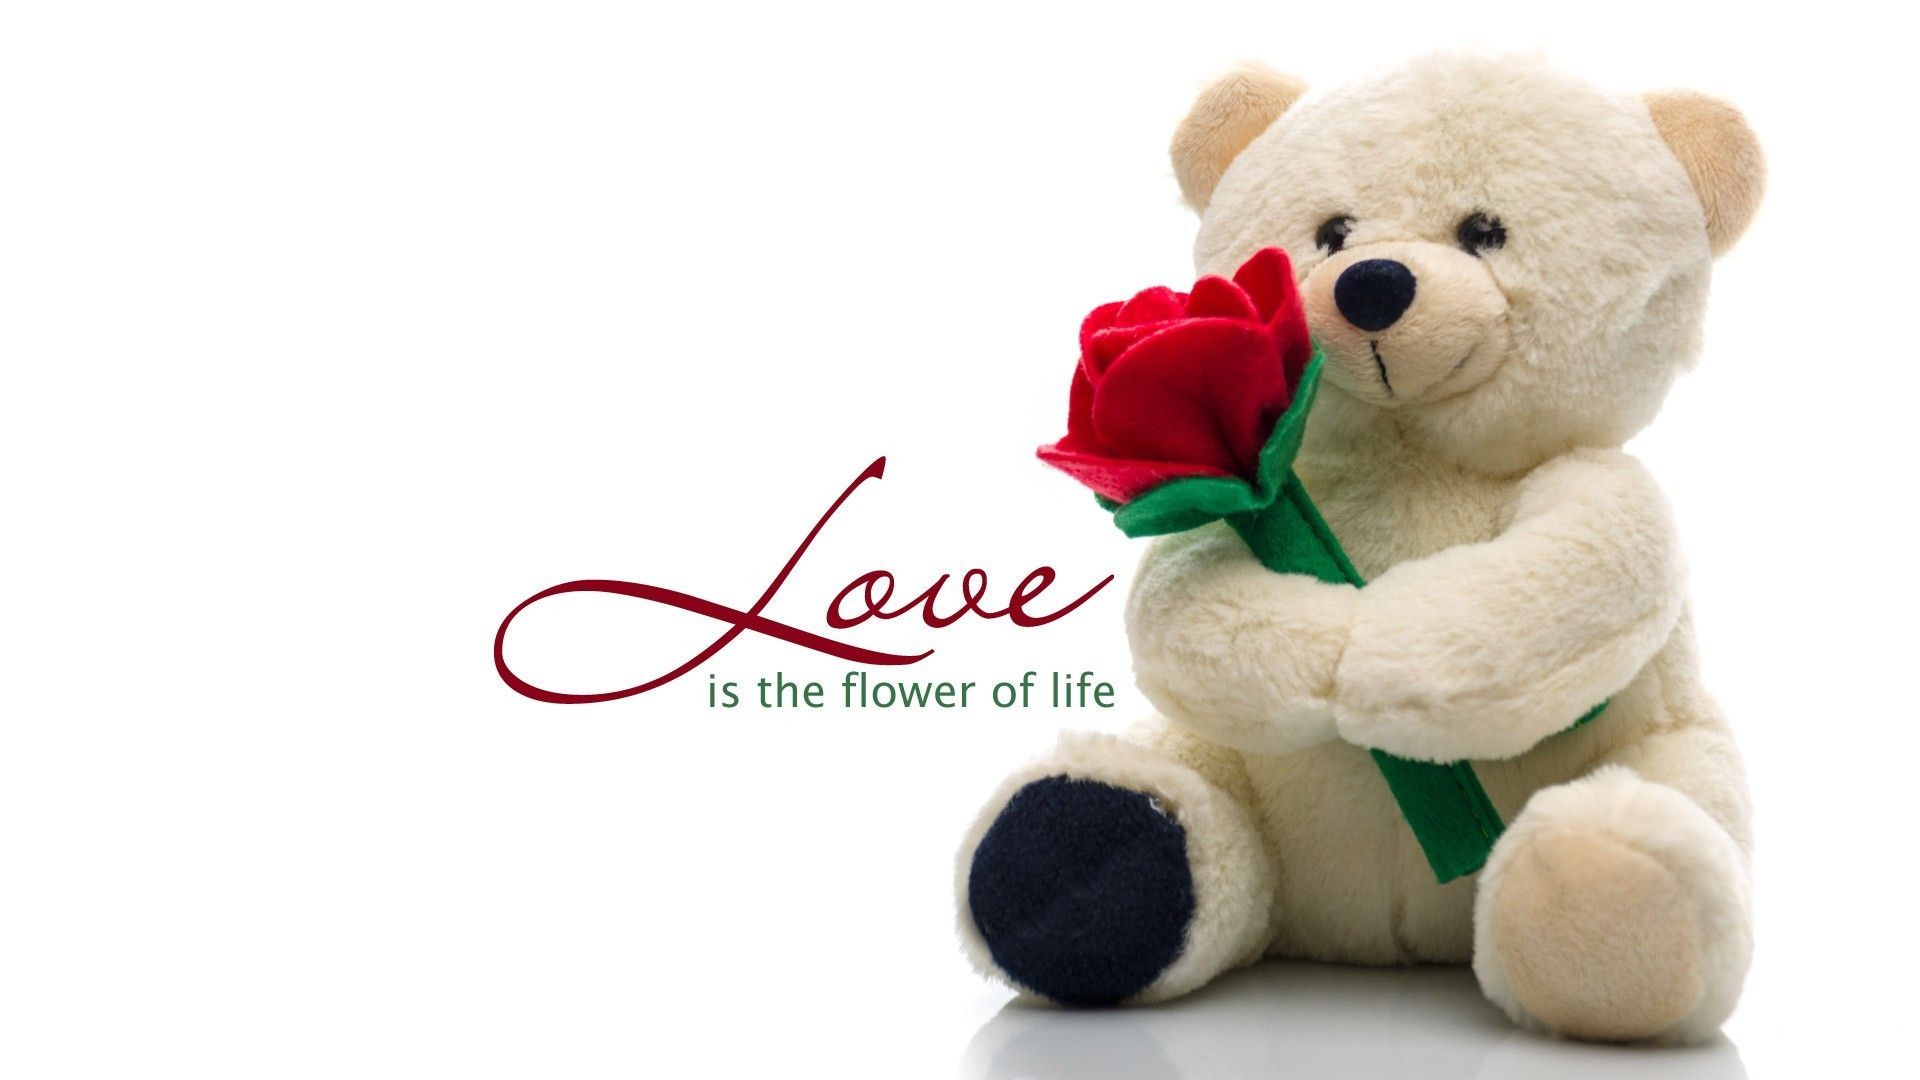 teddy bear wallpapers (7 wallpapers) – adorable wallpapers